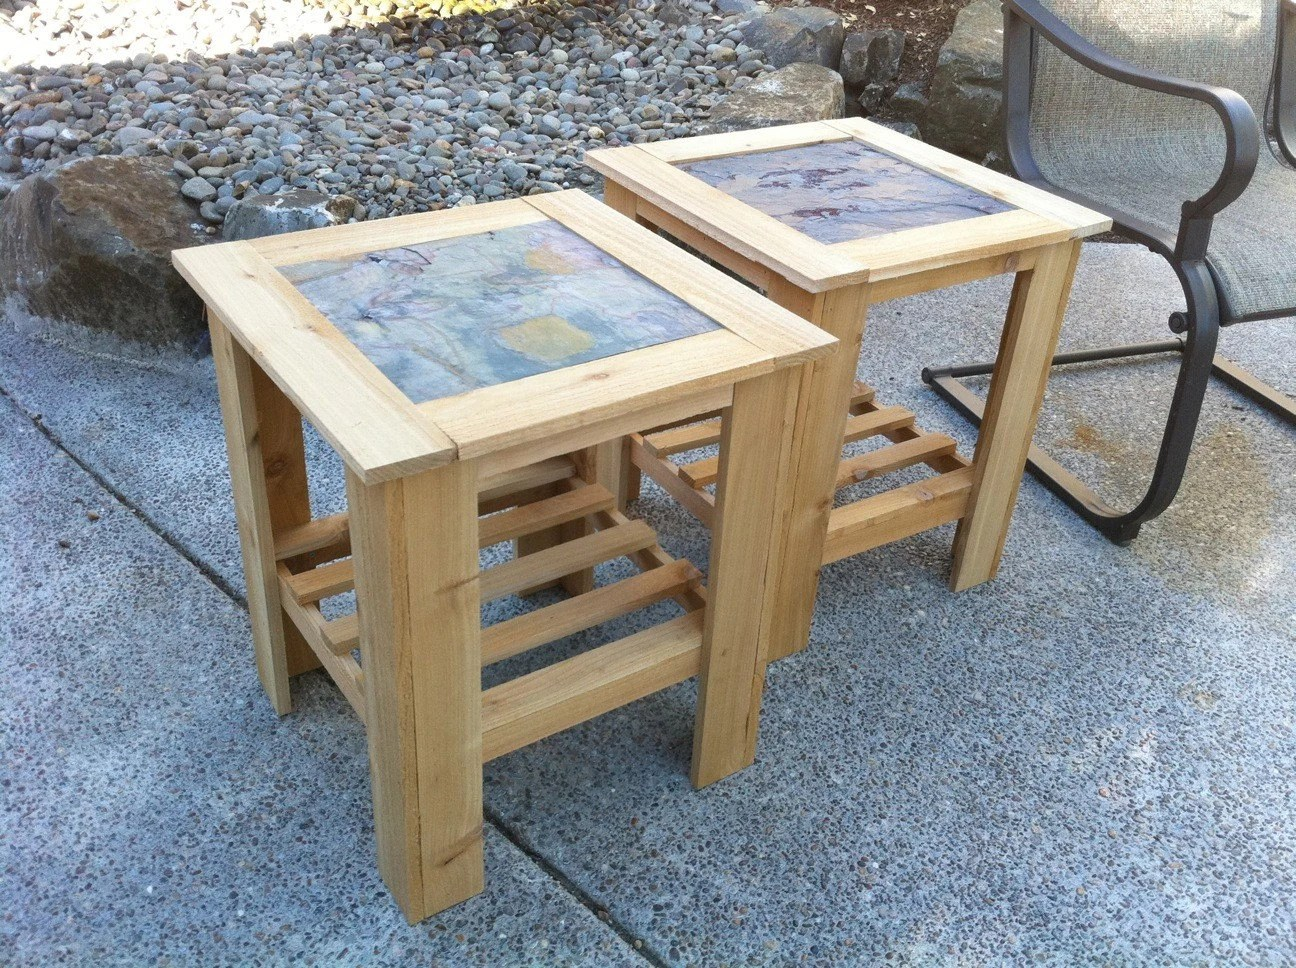 CLEAR FINISH Solid Cedar Wood End Table Outdoor Table Kids